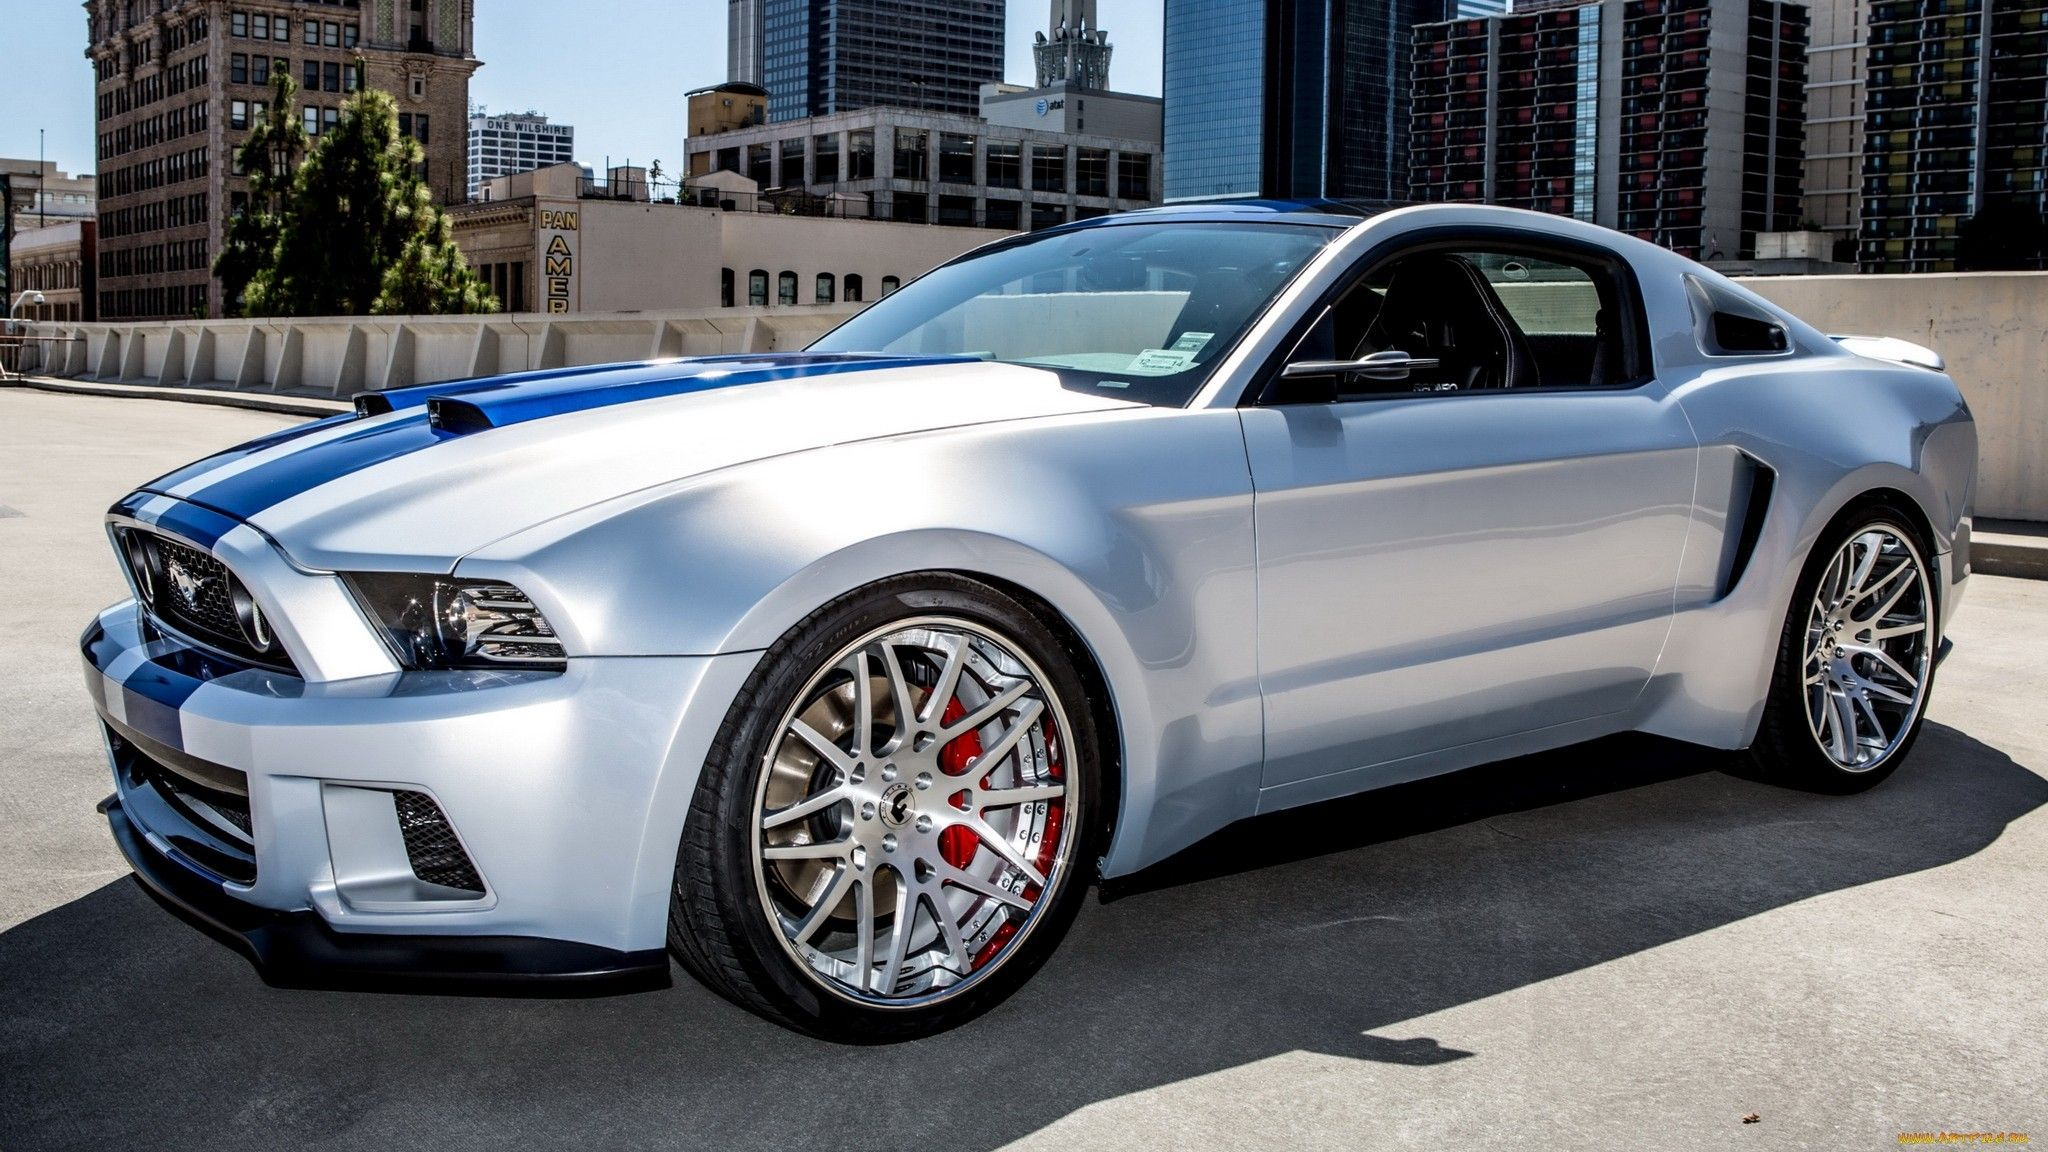 2020 Ford Mustang Shelby Mustang Super Snake Gt Premium 2020